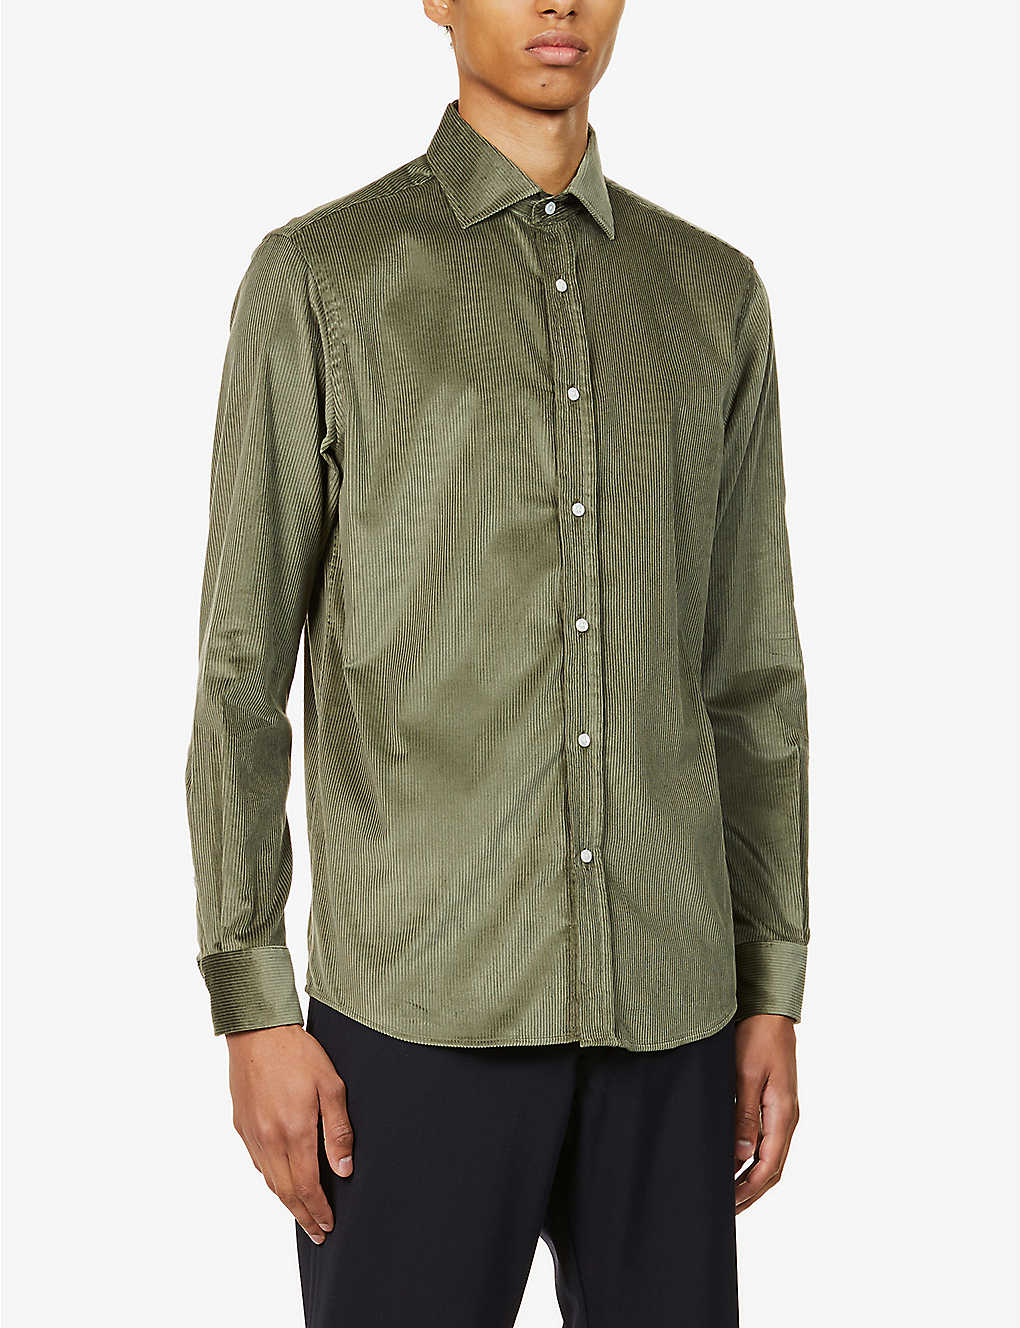 RALPH LAUREN PURPLE LABEL: Aston cotton- and cashmere-blend corduroy shirt